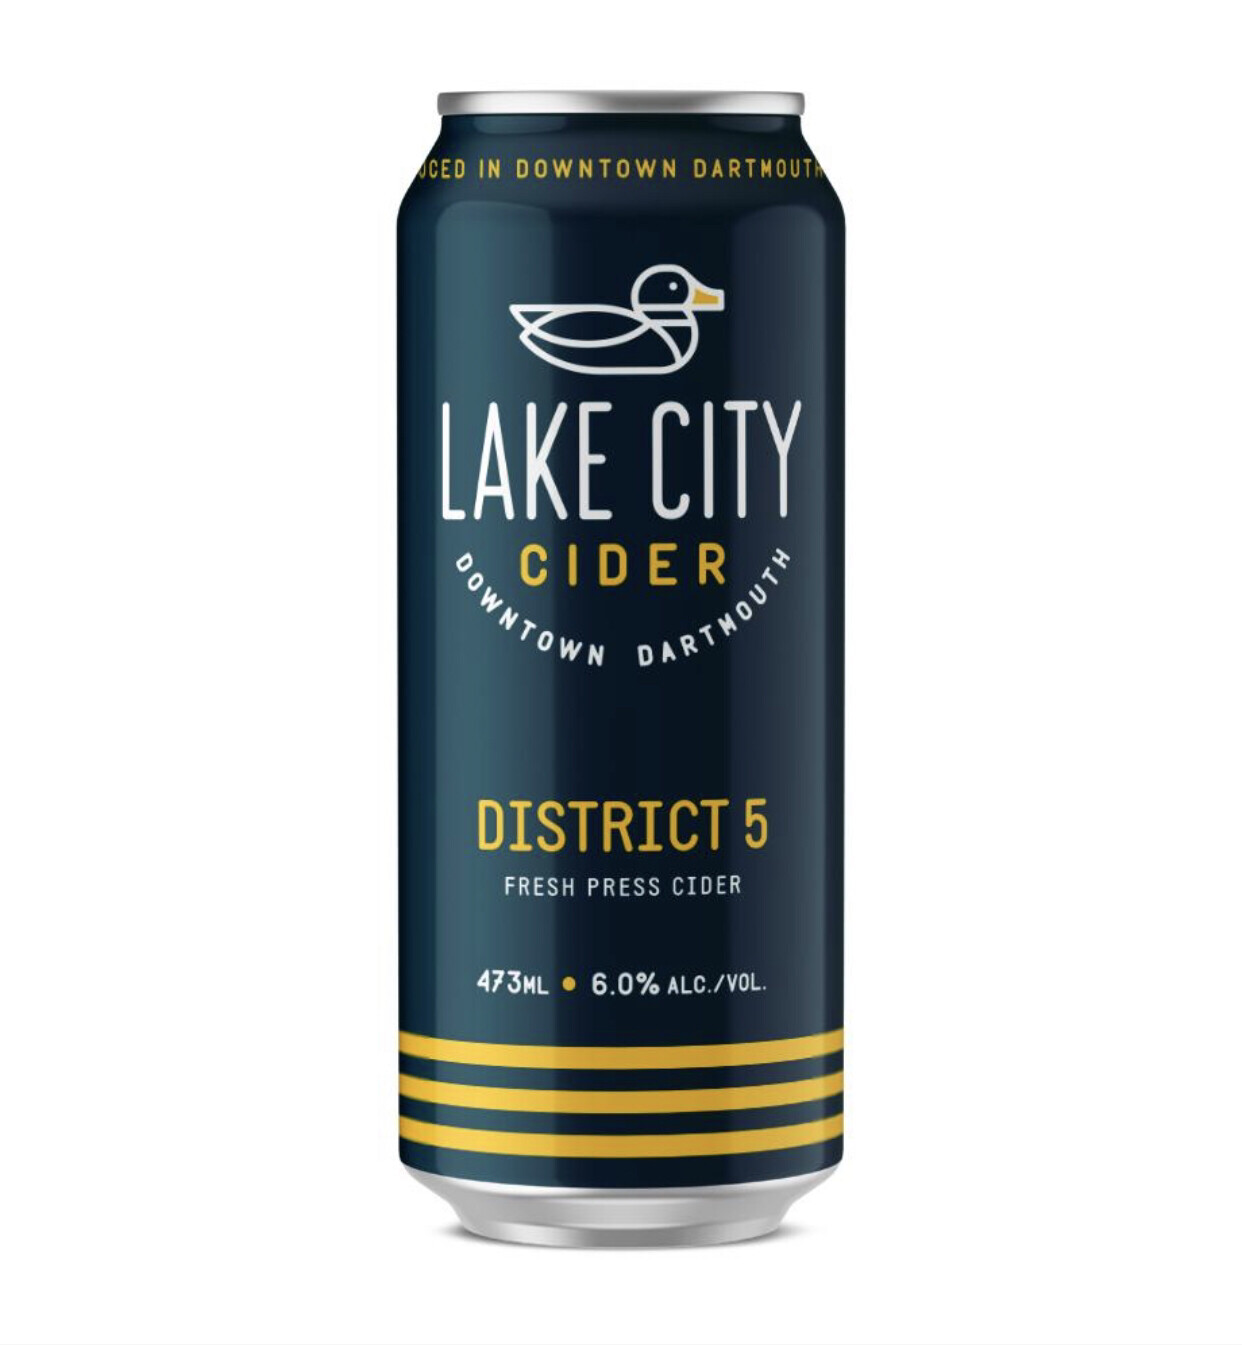 District 5 Lake City Cider